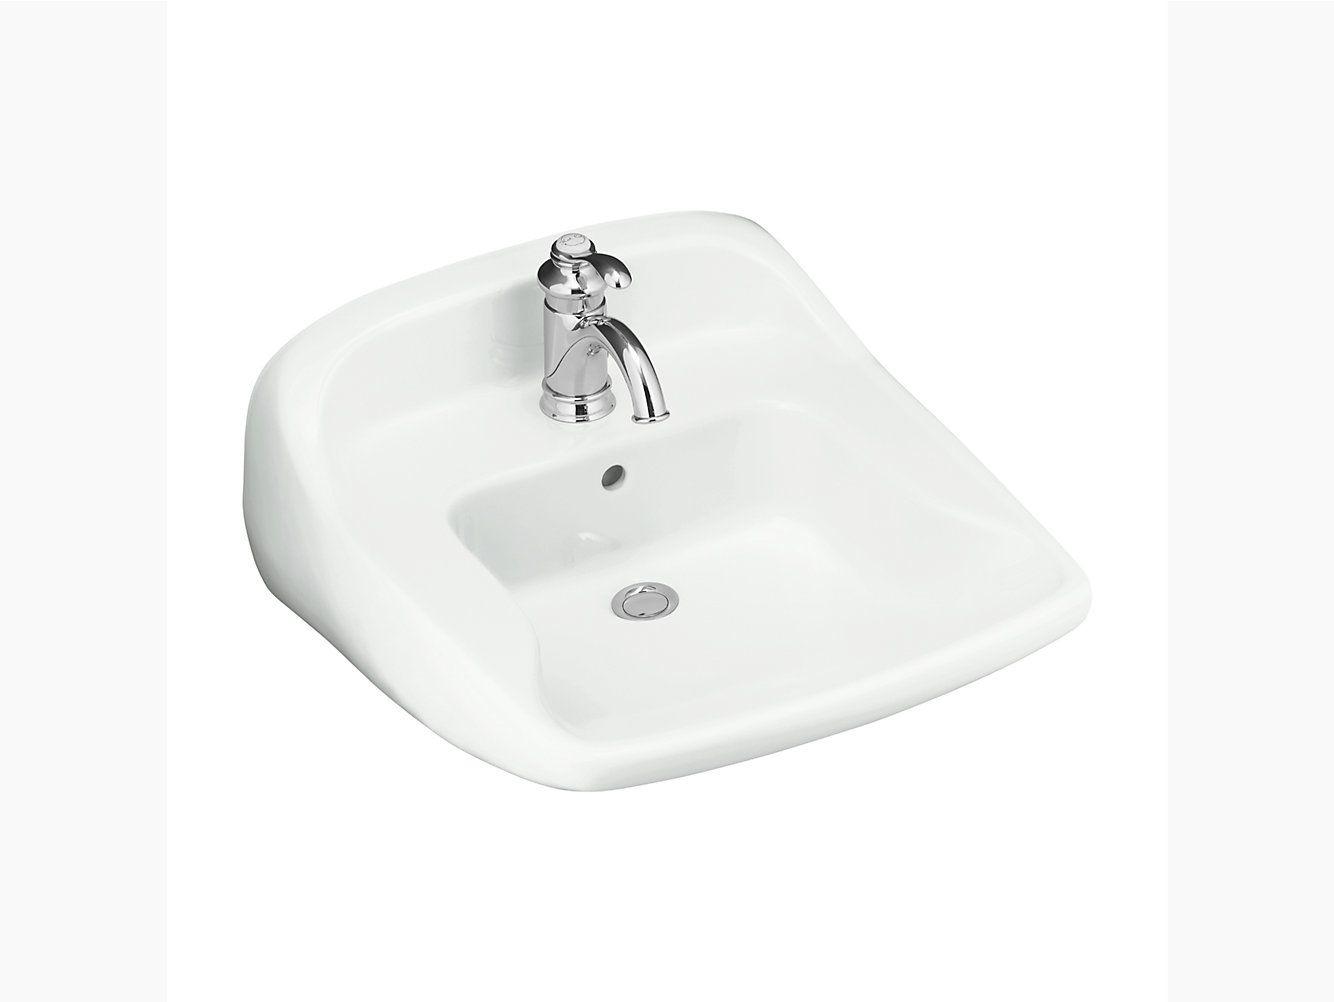 worthington wall mount bathroom sink 442031 sterling - Wall Mount Bathroom Sink